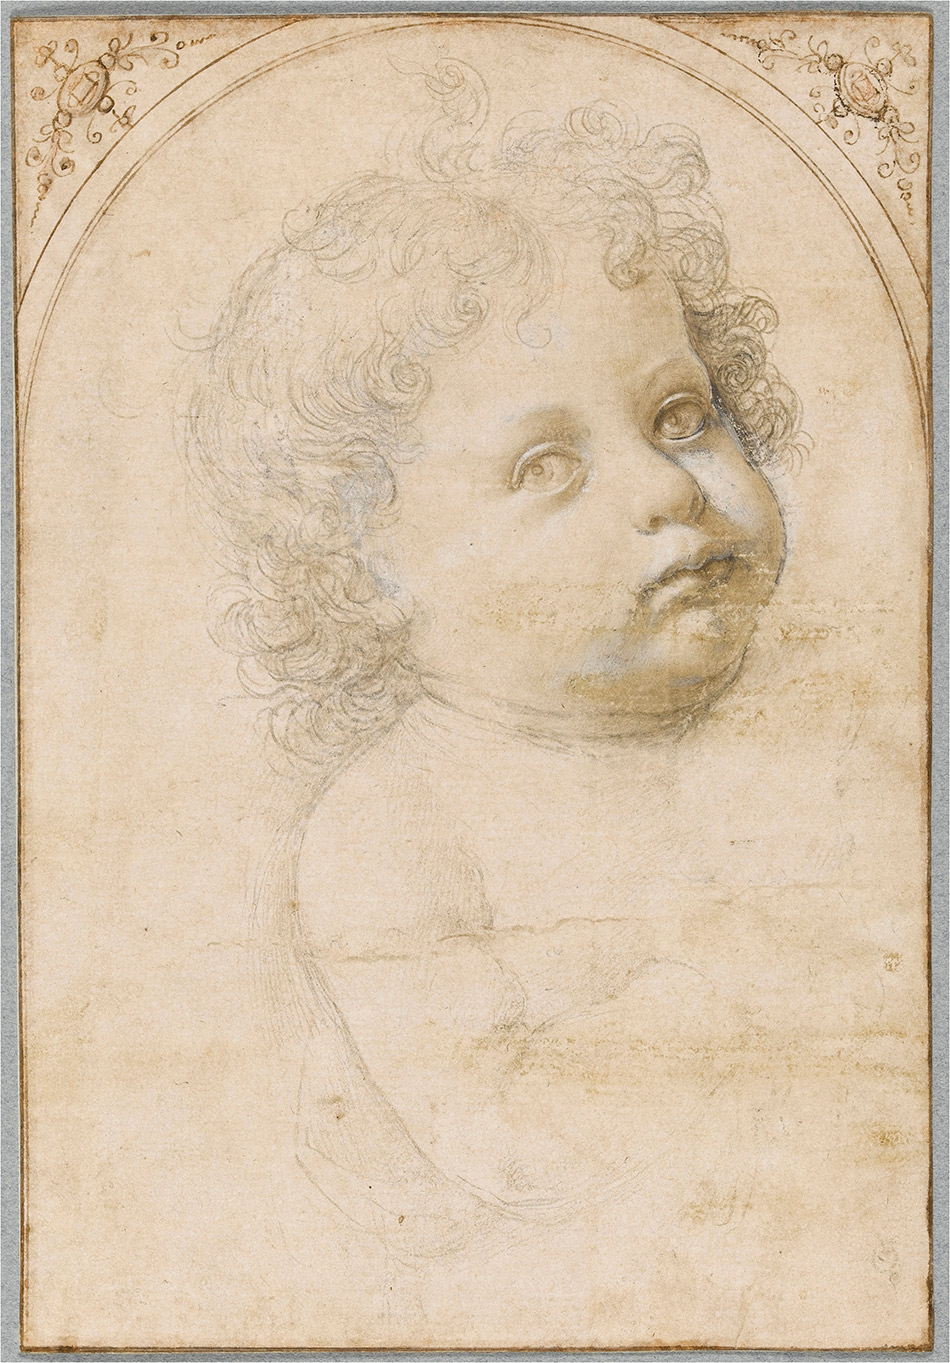 Attributed-to-Andrea-del-Verrocchio_Child-in-Bust-Length-Three-Quarter-View_950-W